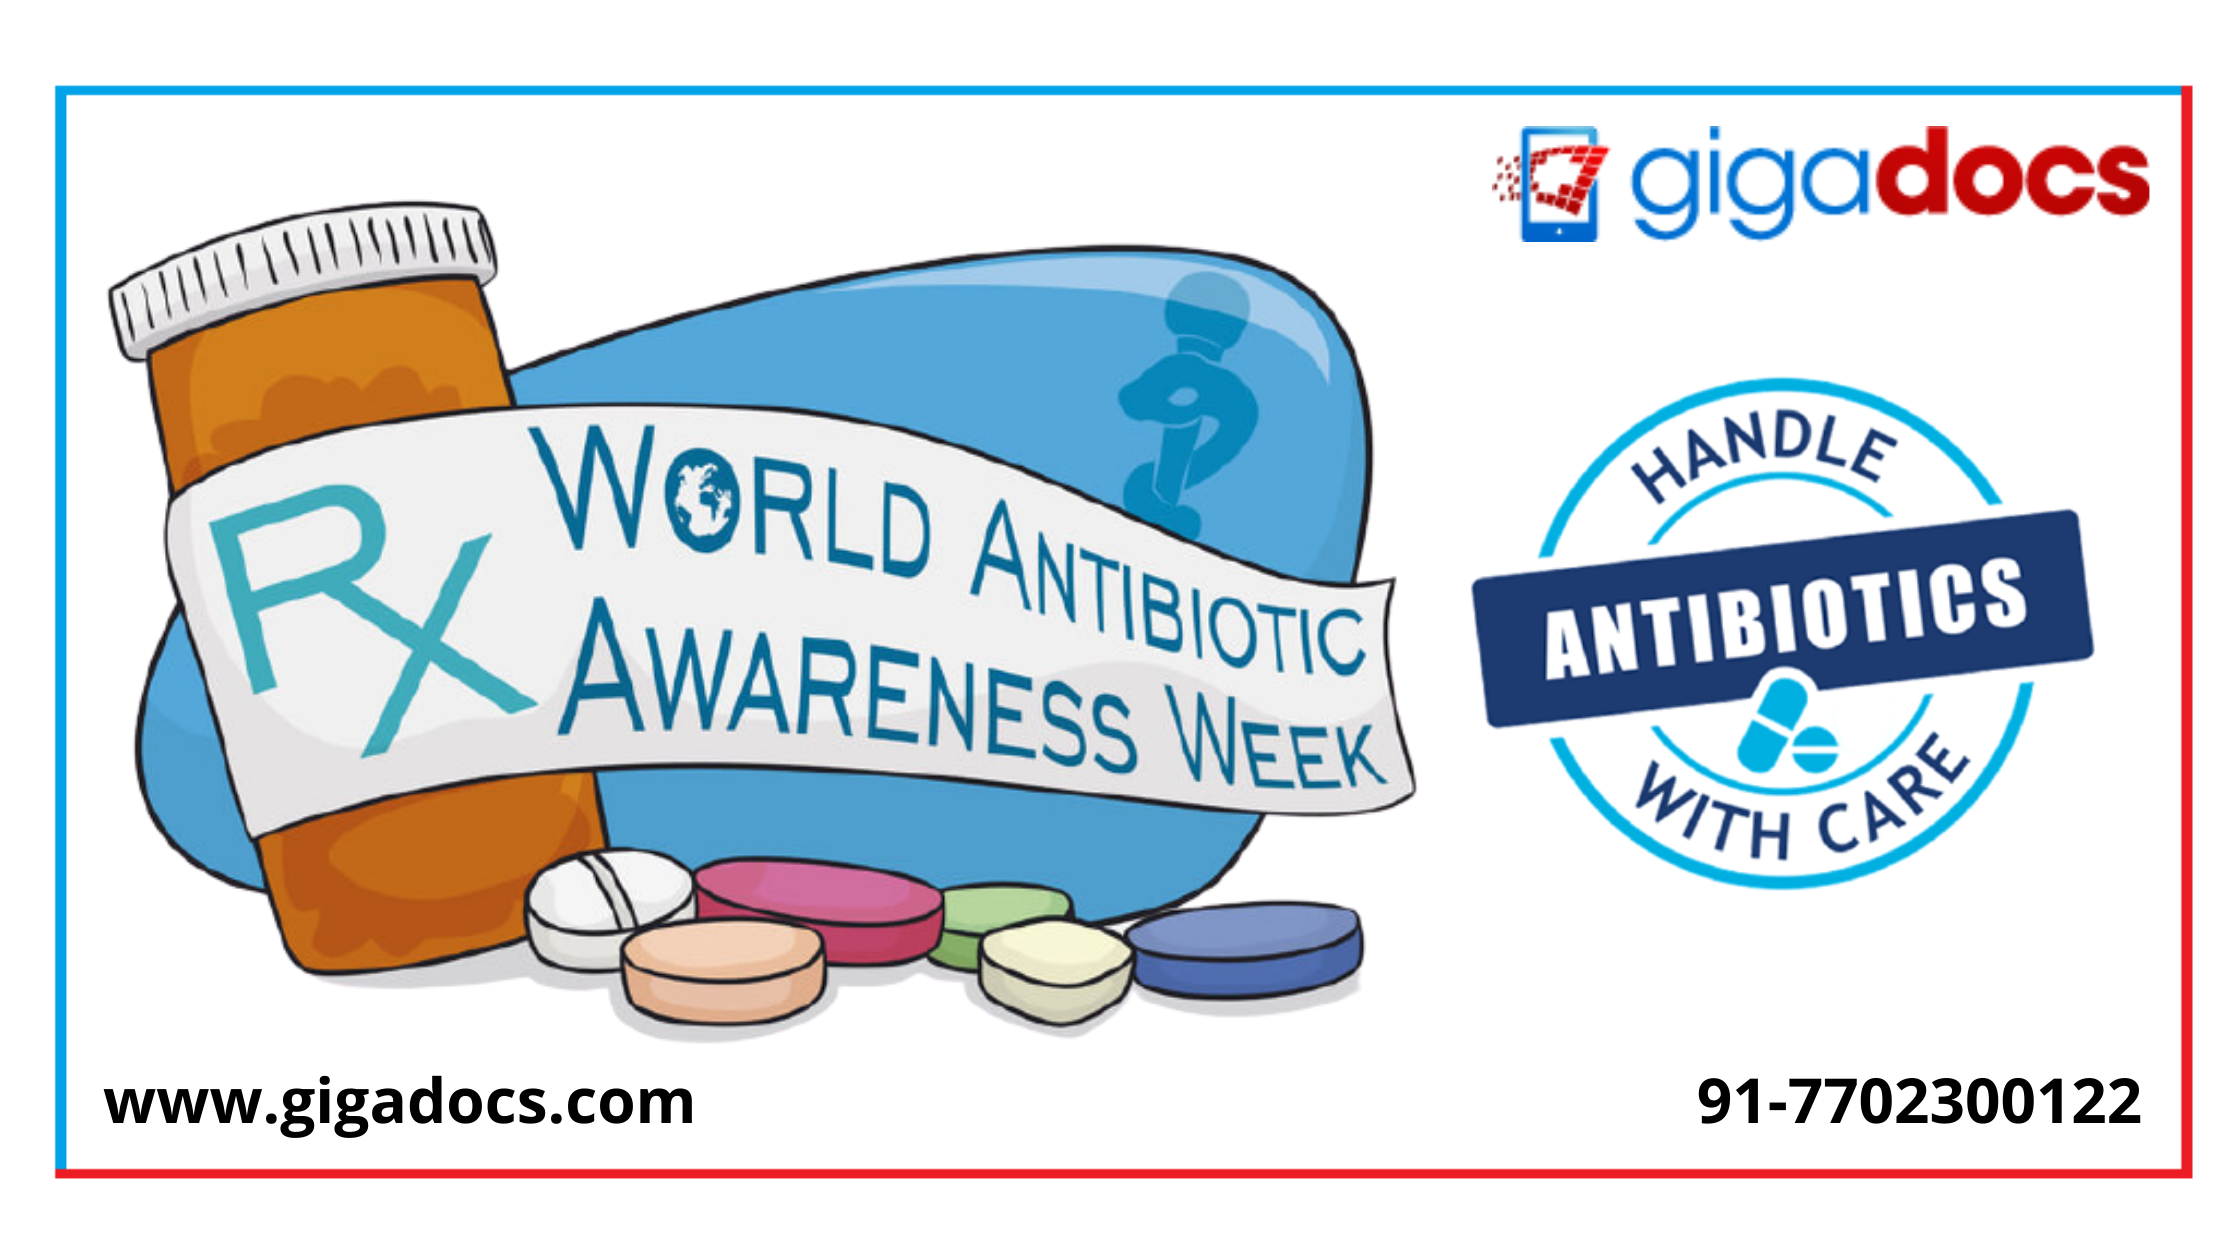 World Antimicrobial Awareness Week (WAAW) aims to increase awareness of global antimicrobial resistance